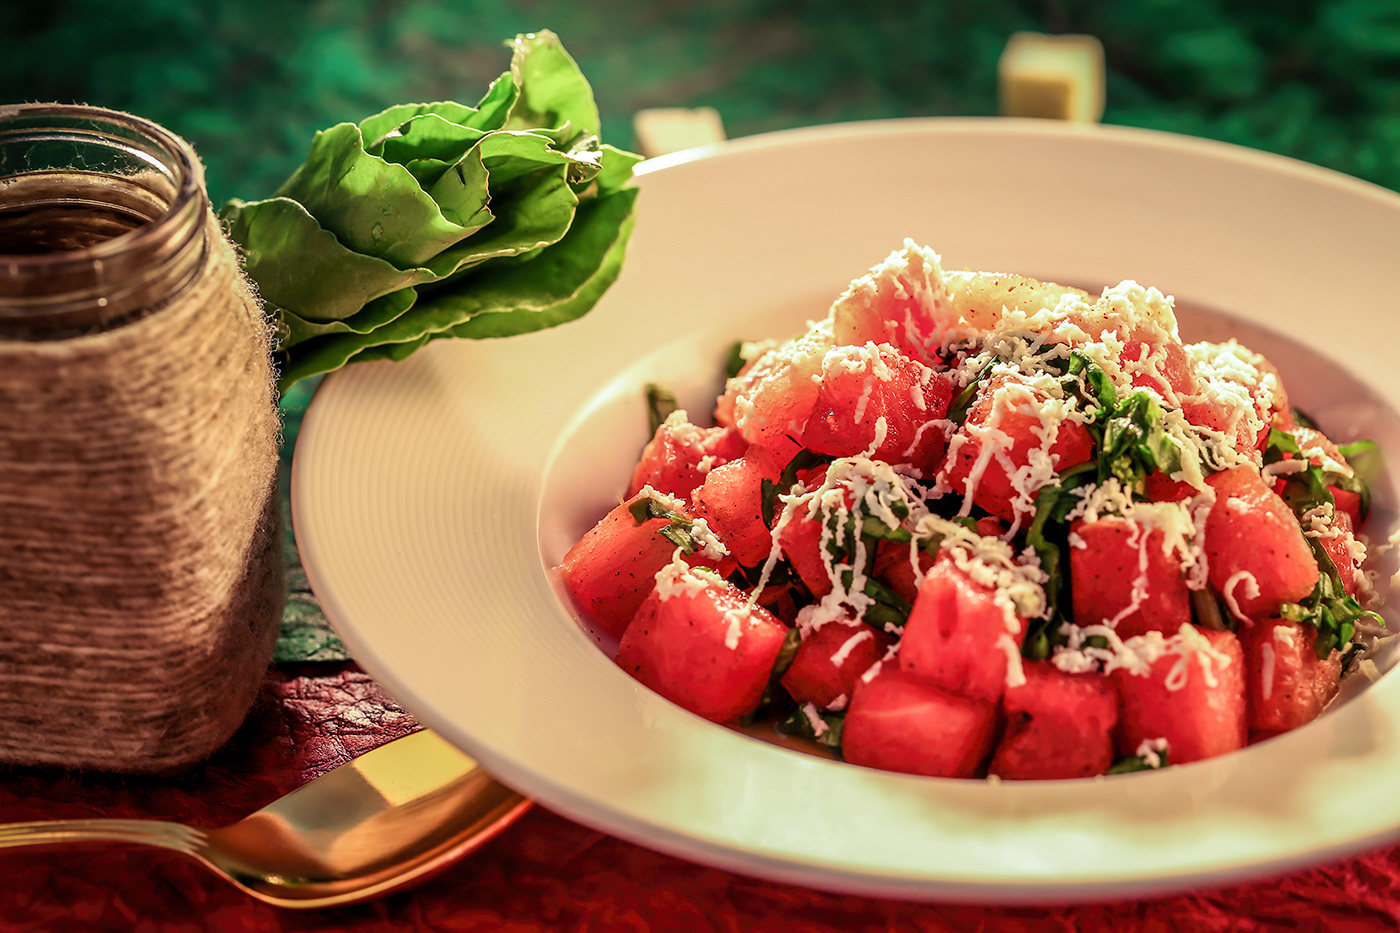 Food  Culinary cafe restaurant food photography fruits